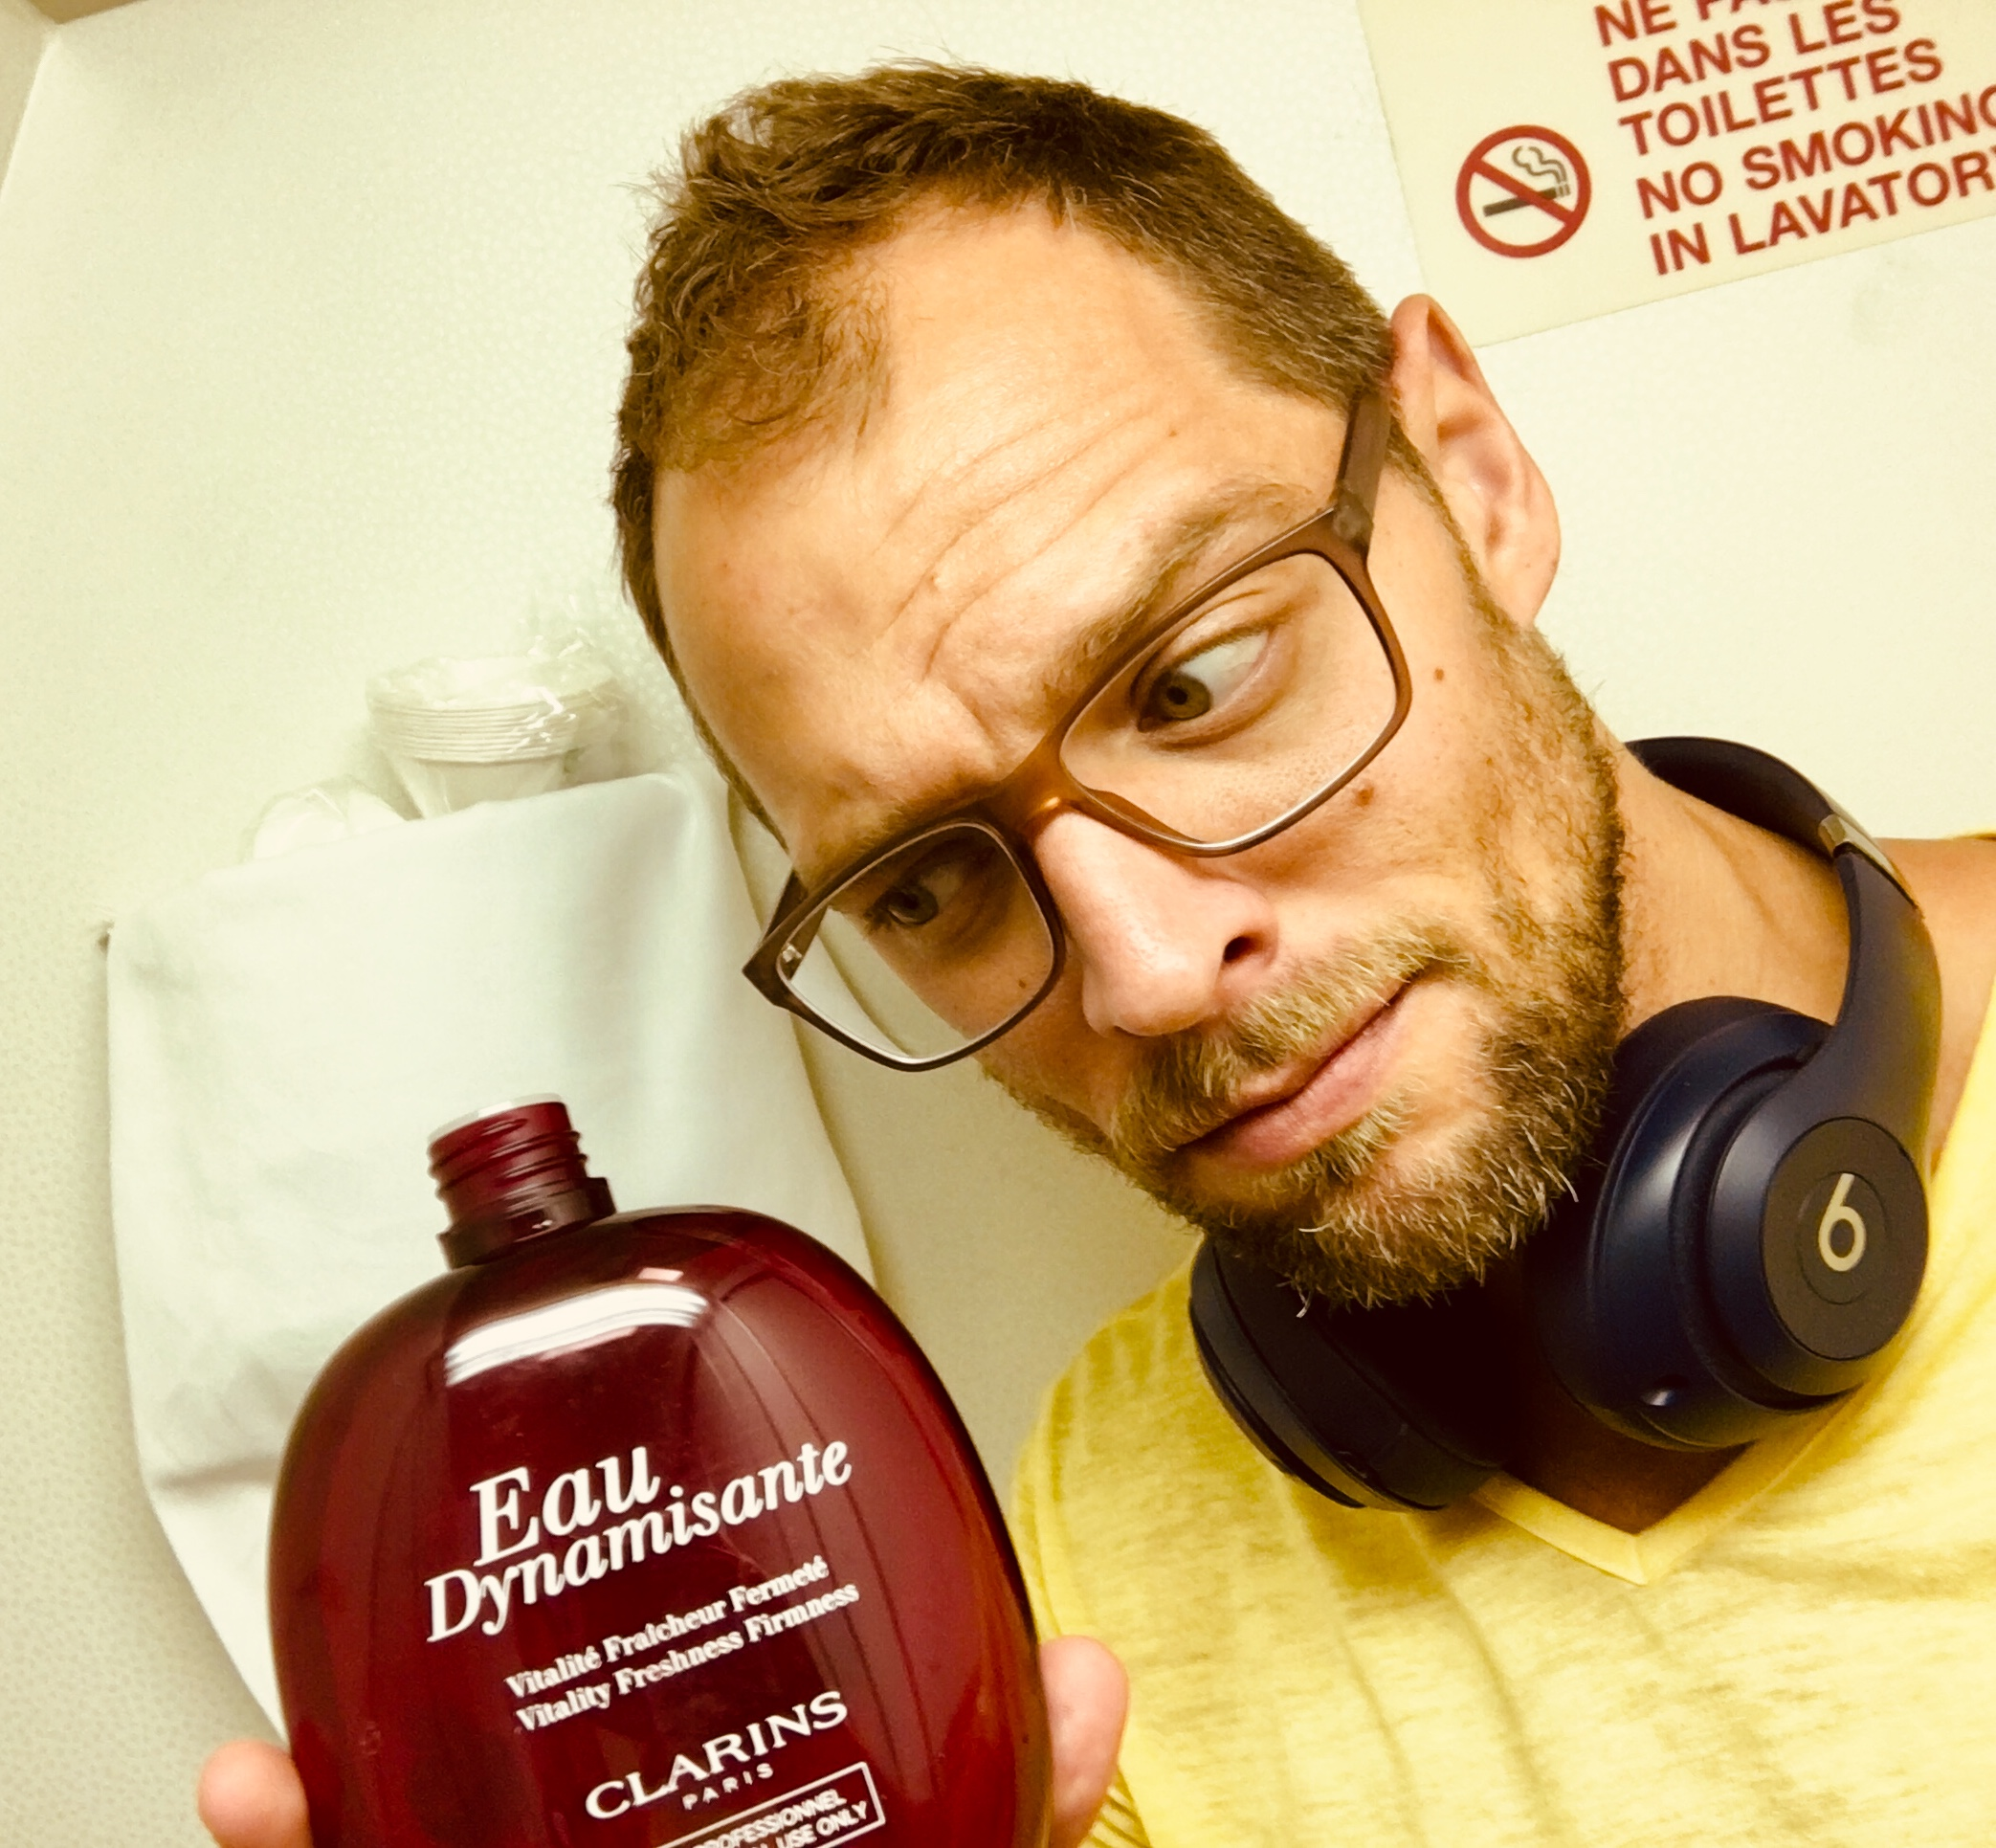 JSB holding bottle of Eau Dynamisante (air freshener?) in Air France lavatory